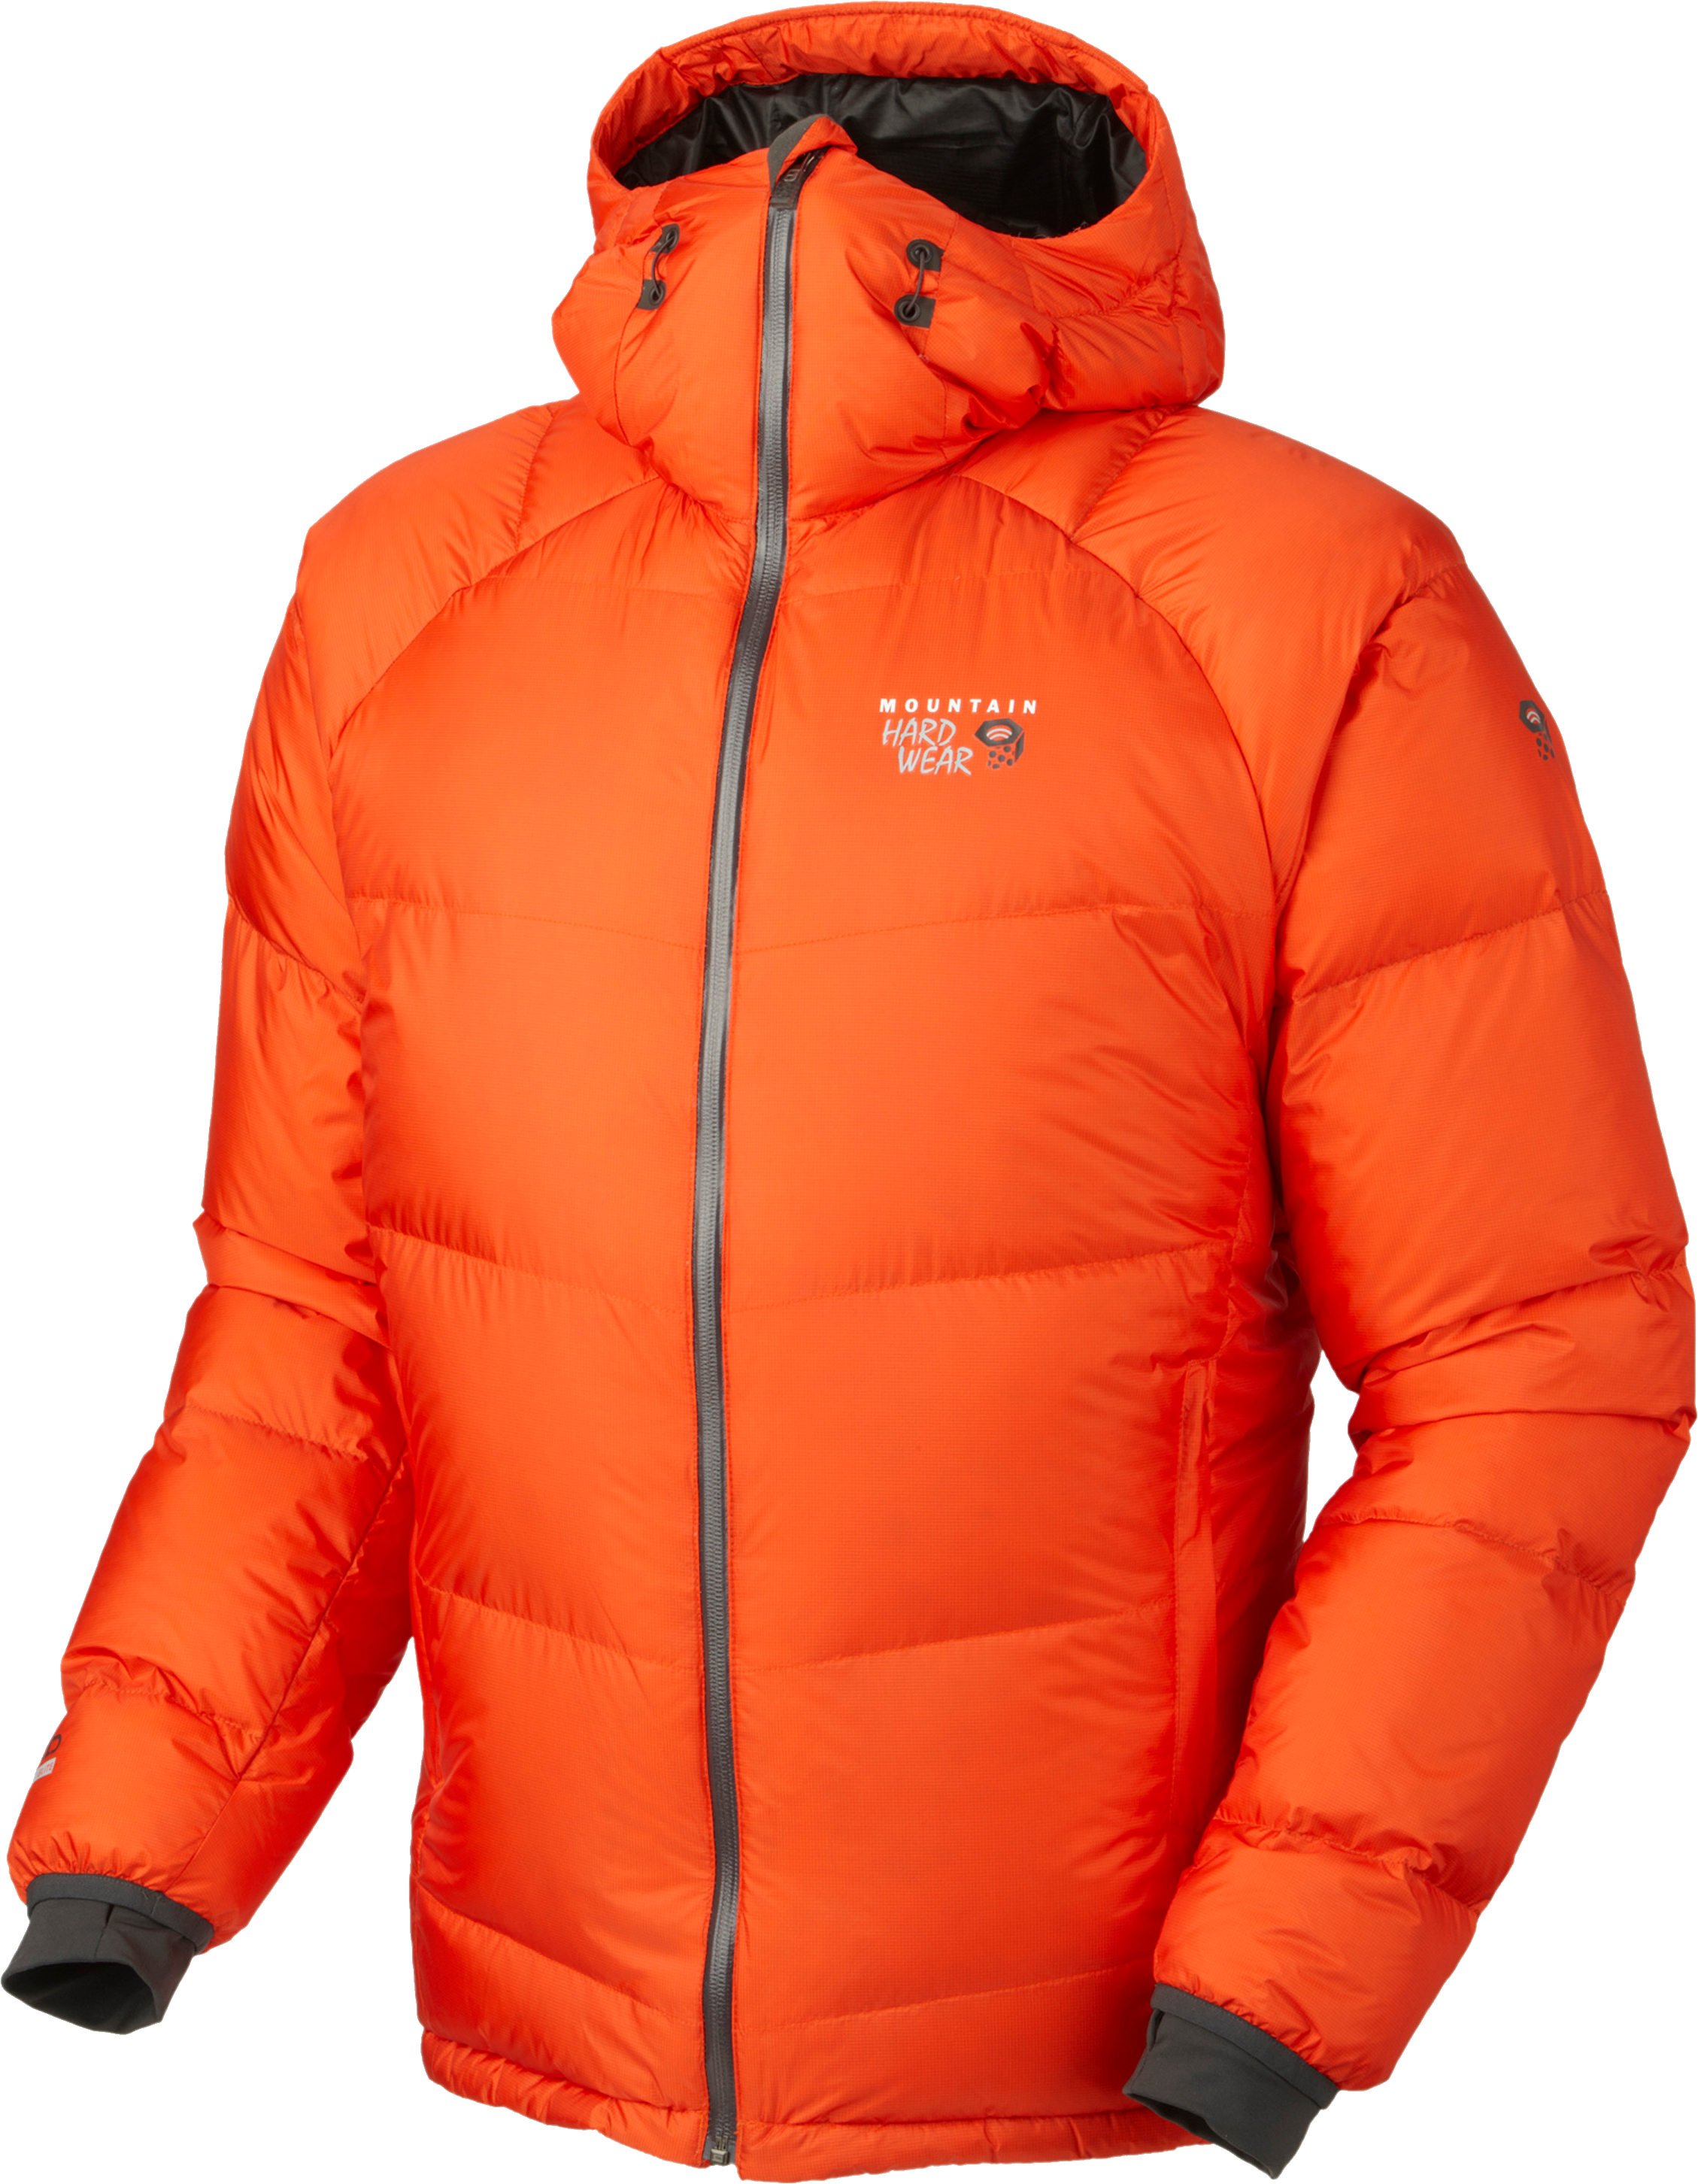 Coat orange jacket